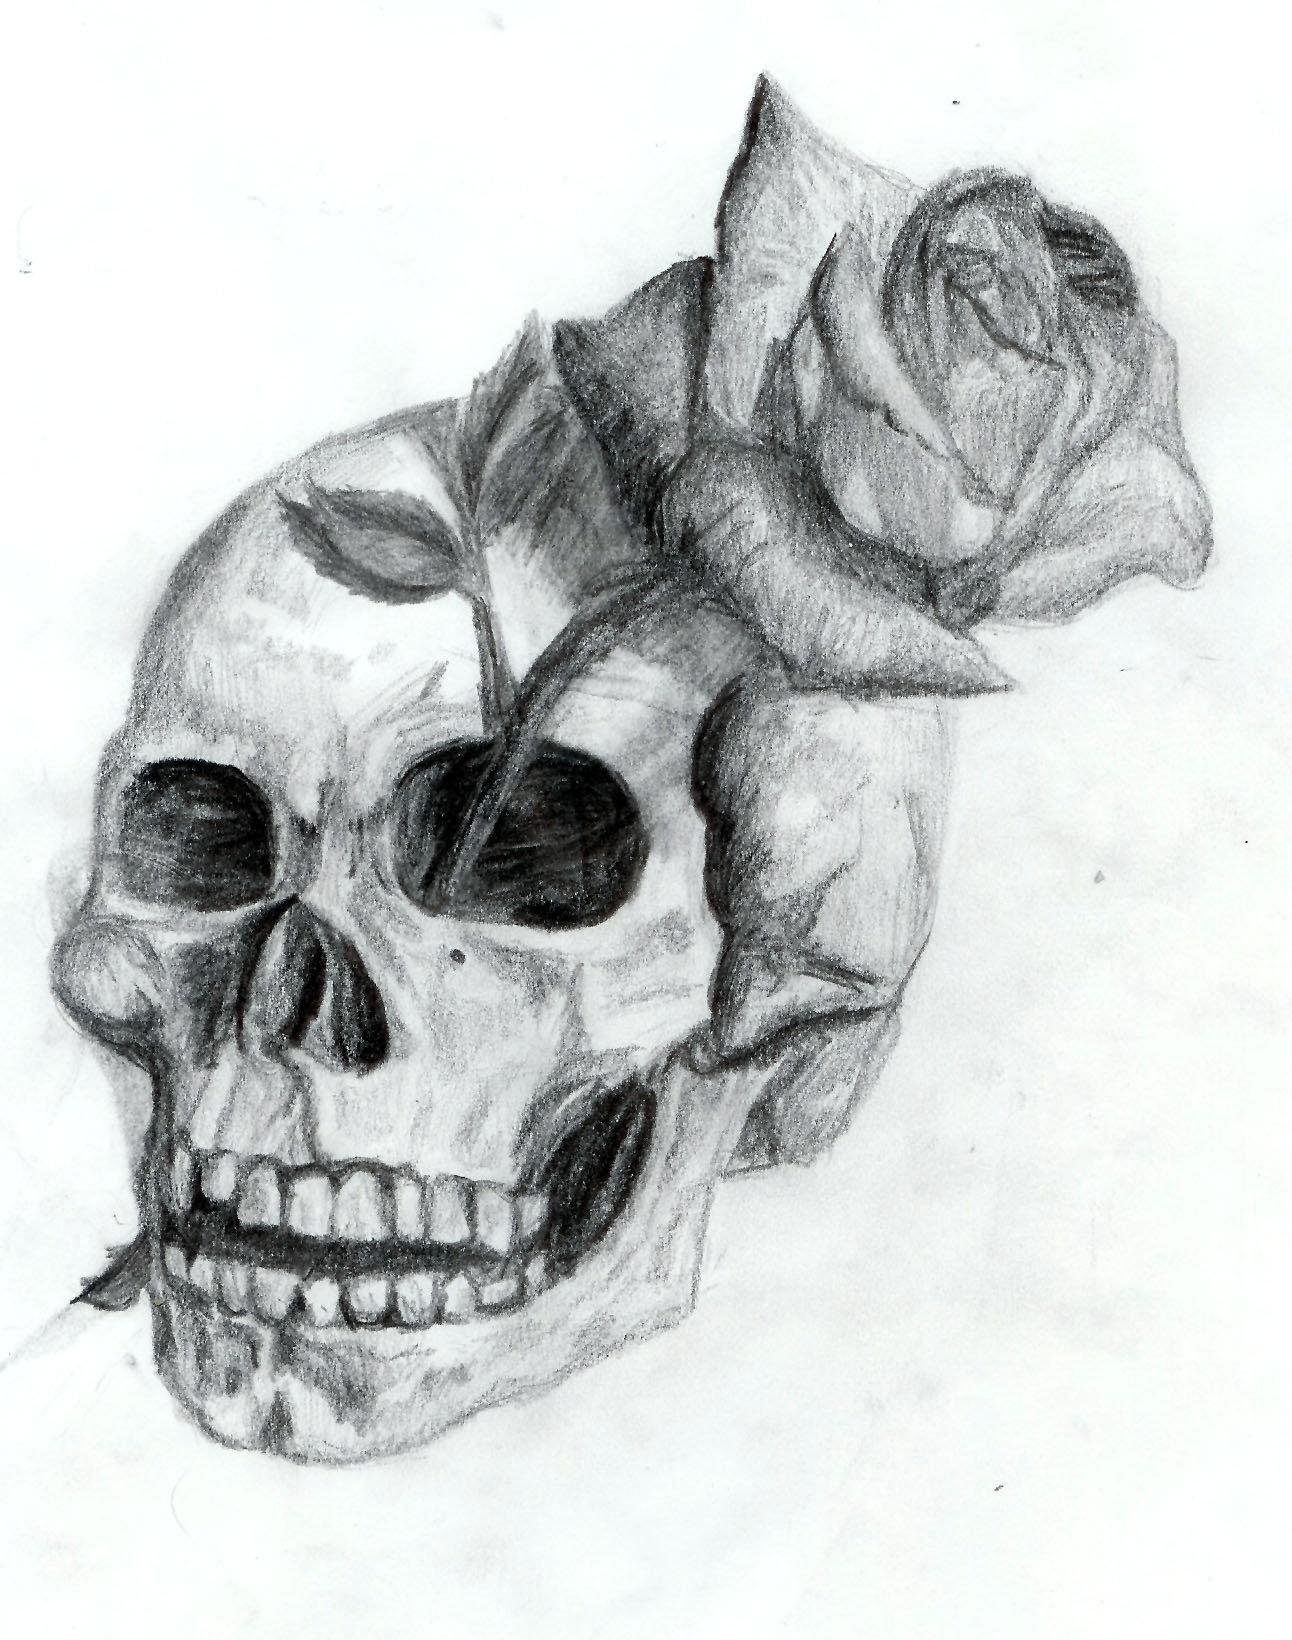 Drawn ssckull creative And Dyslogistic Skull Skull Rose